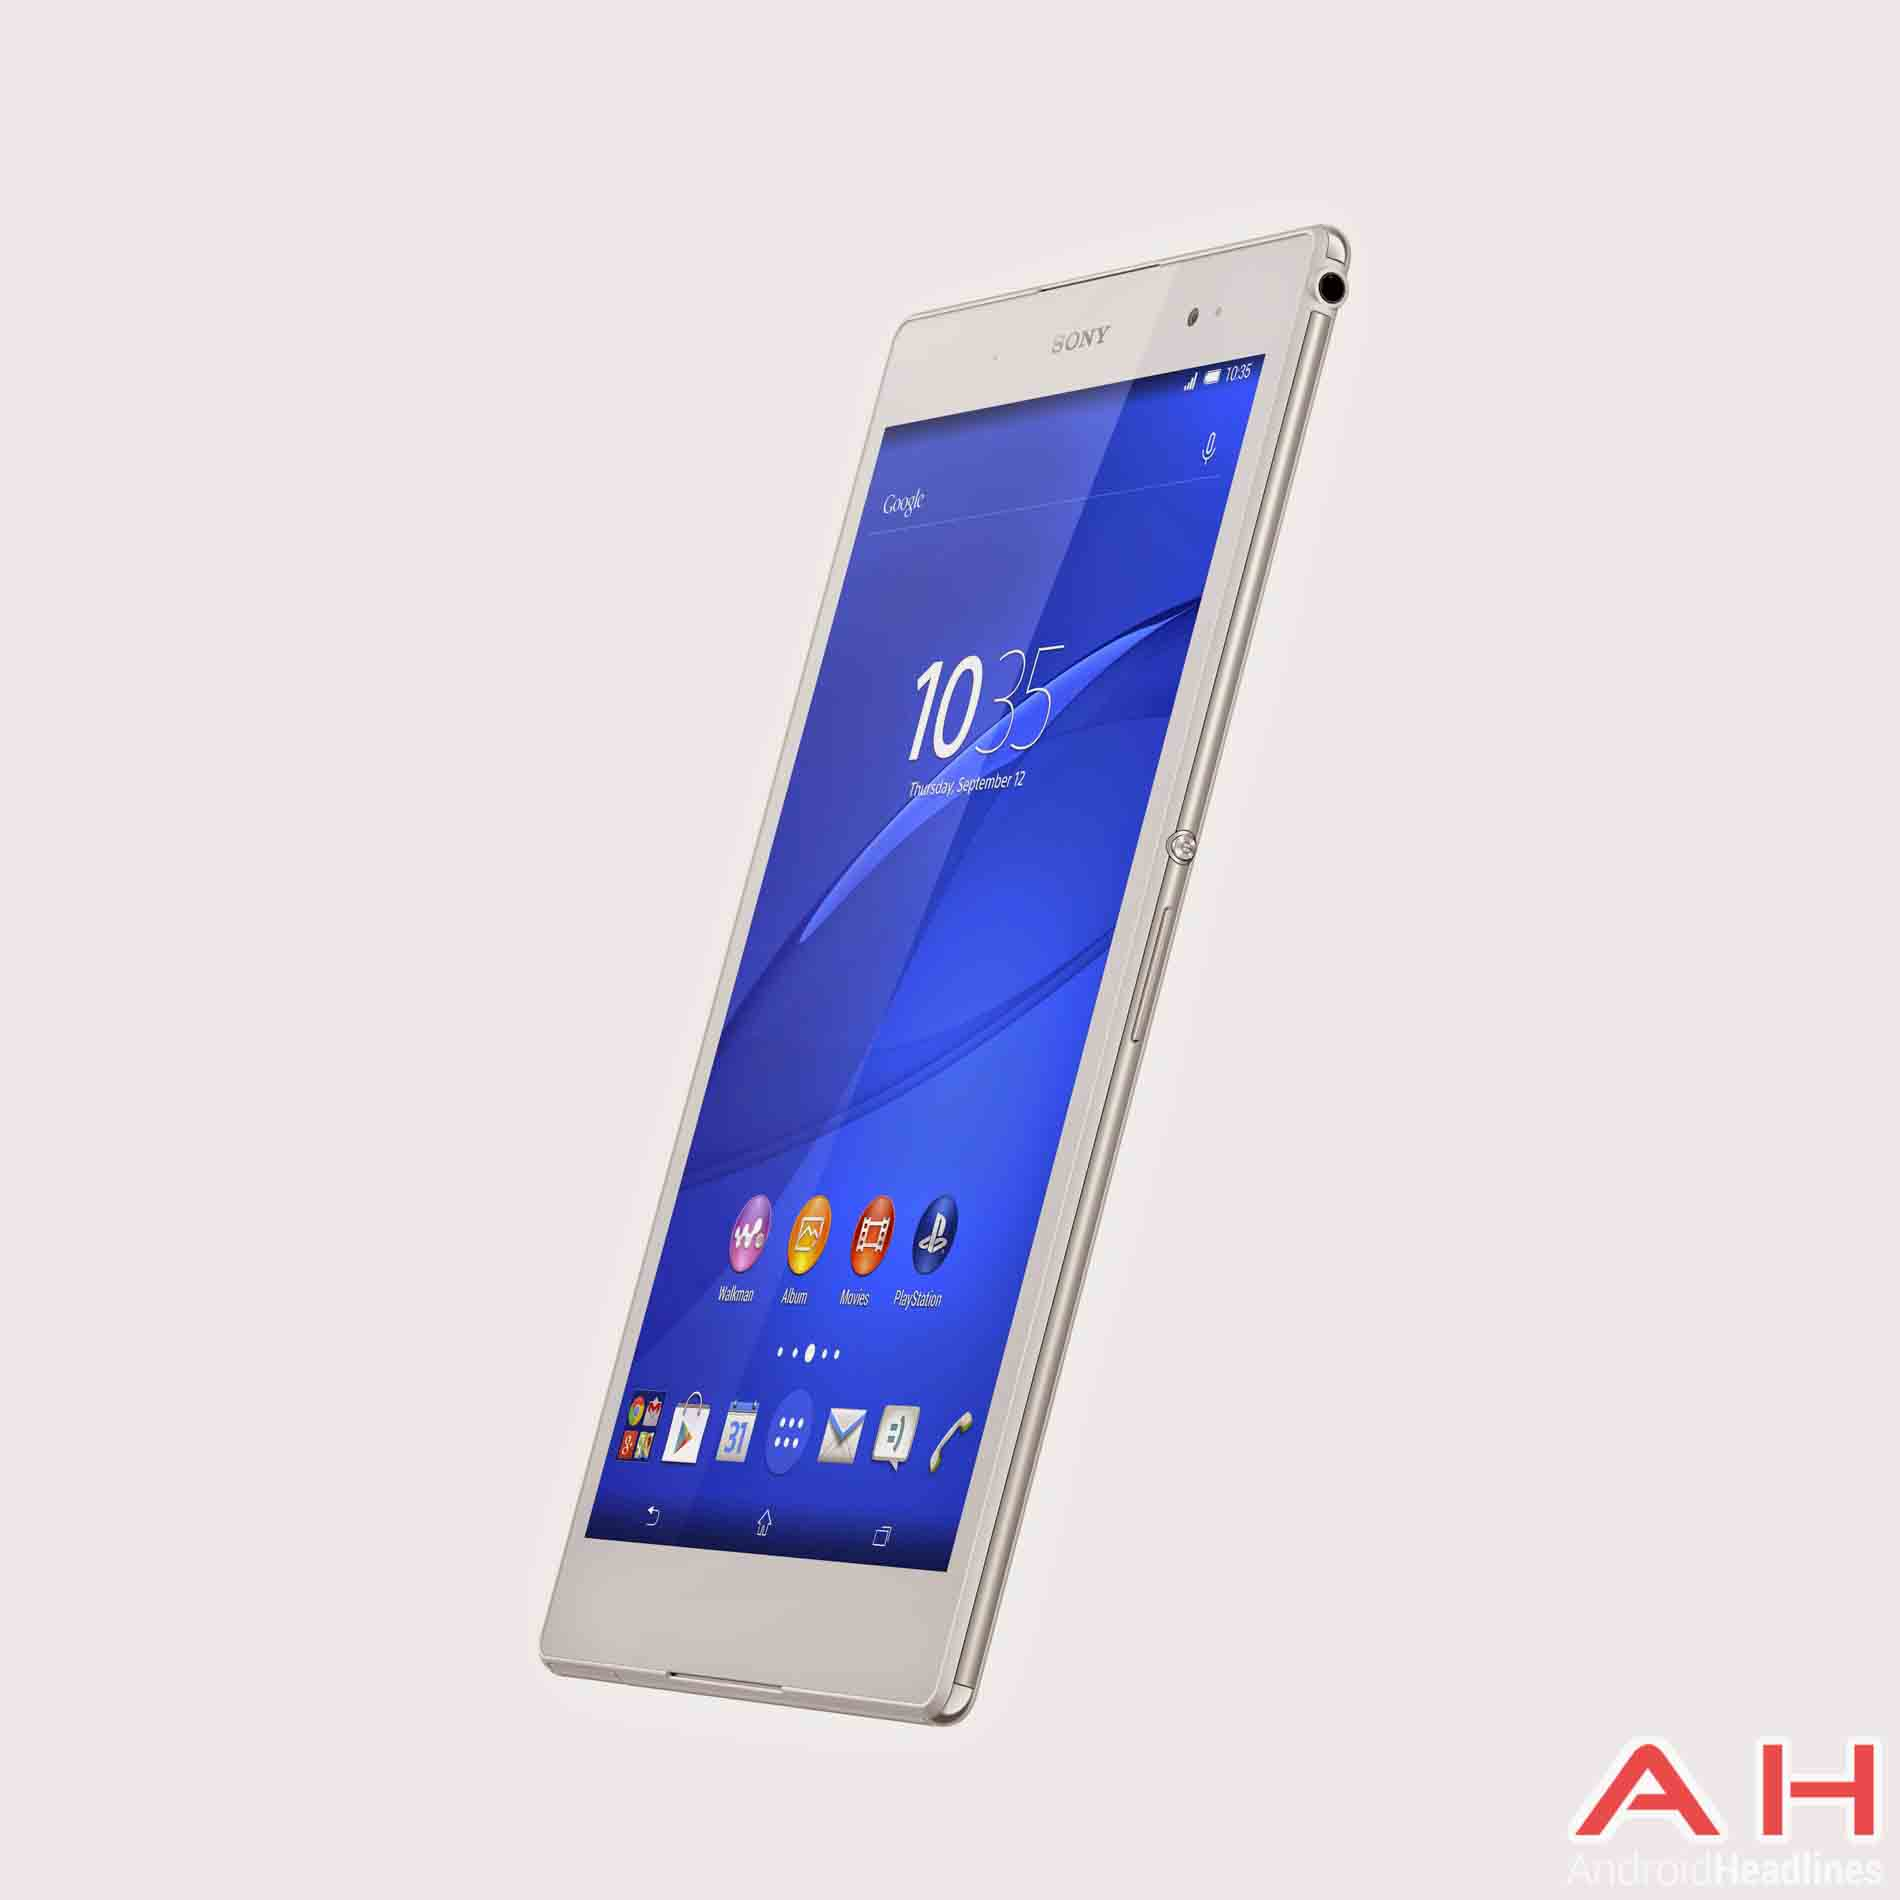 Sony-Xperia-Z3-Tablet-Compact-AH-3